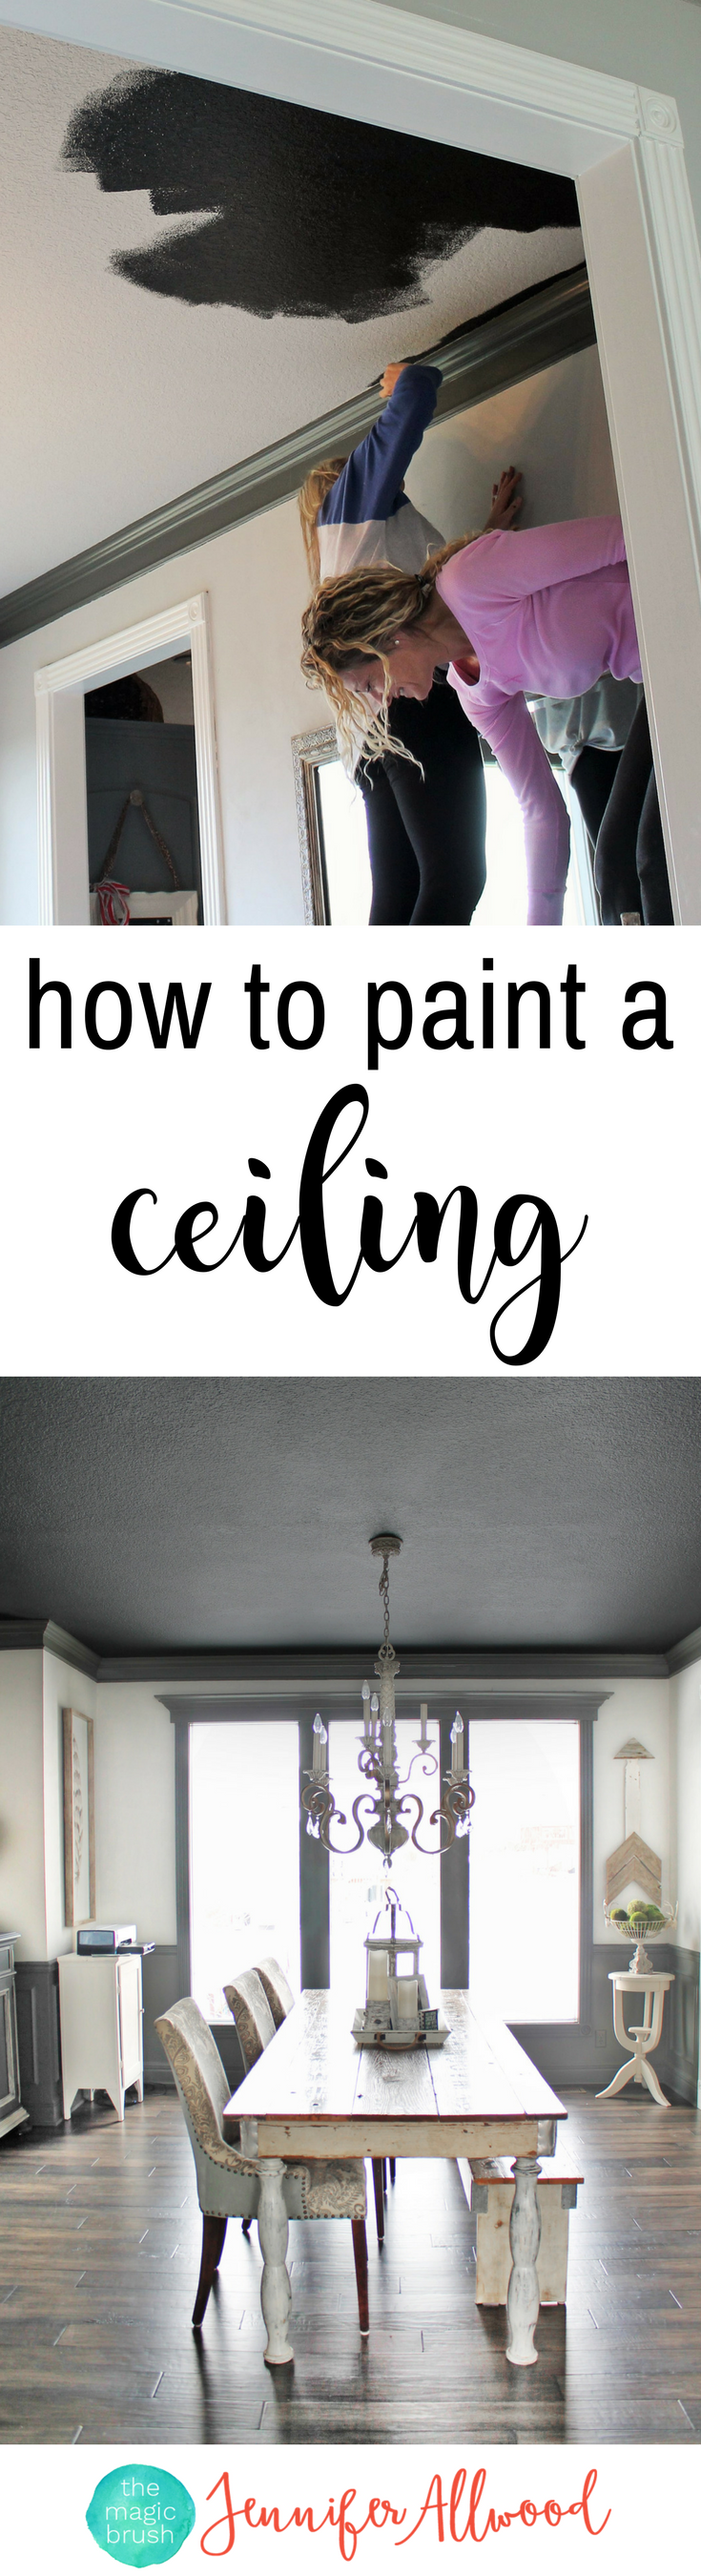 Dining Room Ceiling Paint Ideas Part - 17: How To Paint A Ceiling ... Black! Painted Black Ceiling In The Dining